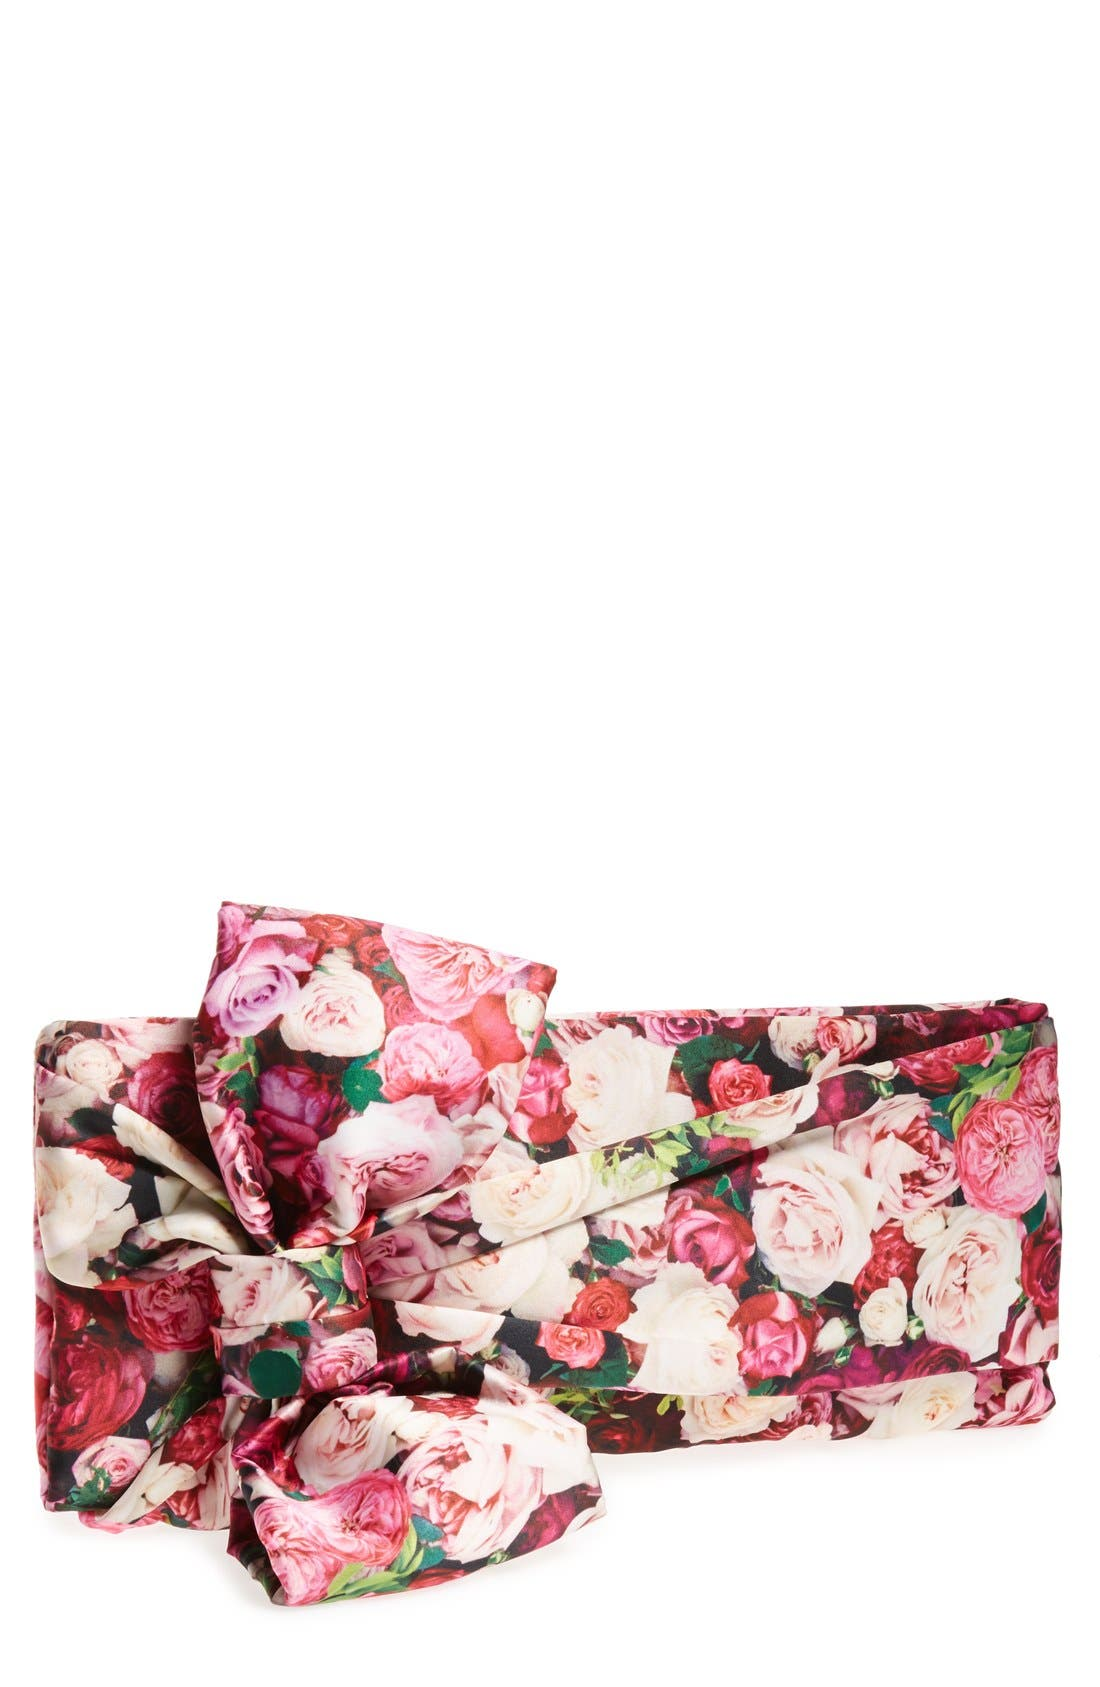 Alternate Image 1 Selected - kate spade new york 'evening belles - gini' clutch